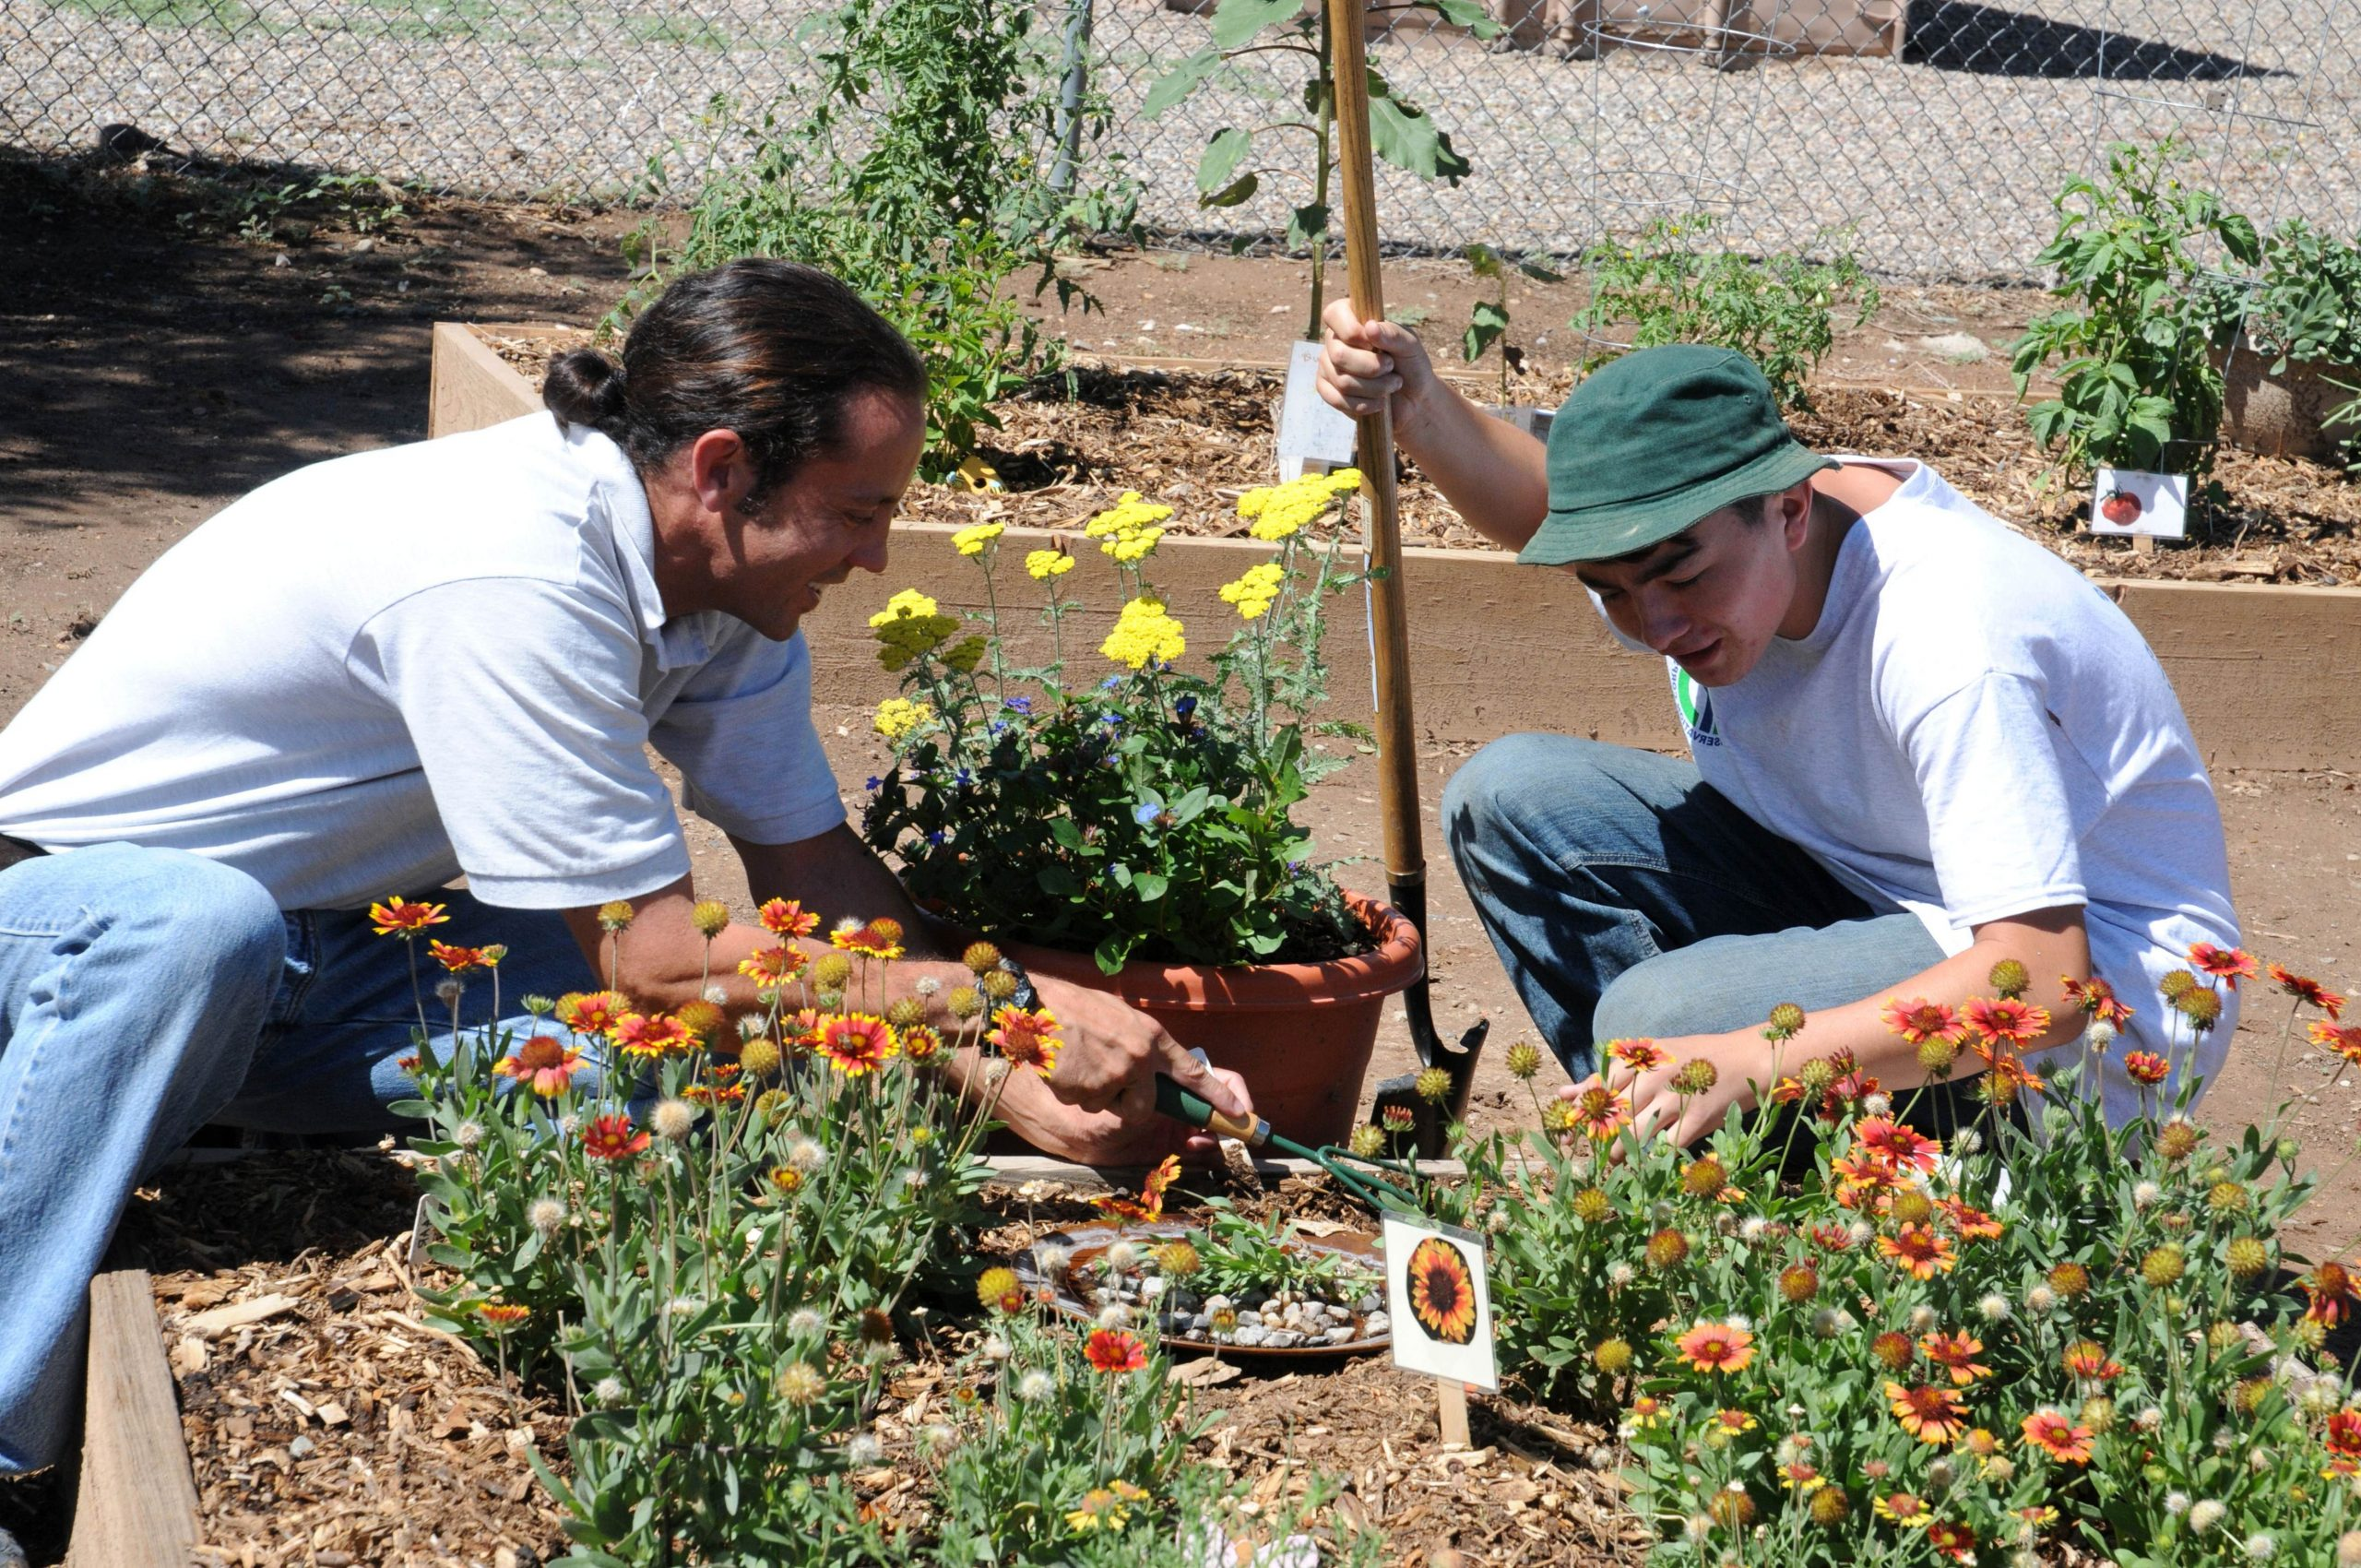 two young men working on a community garden